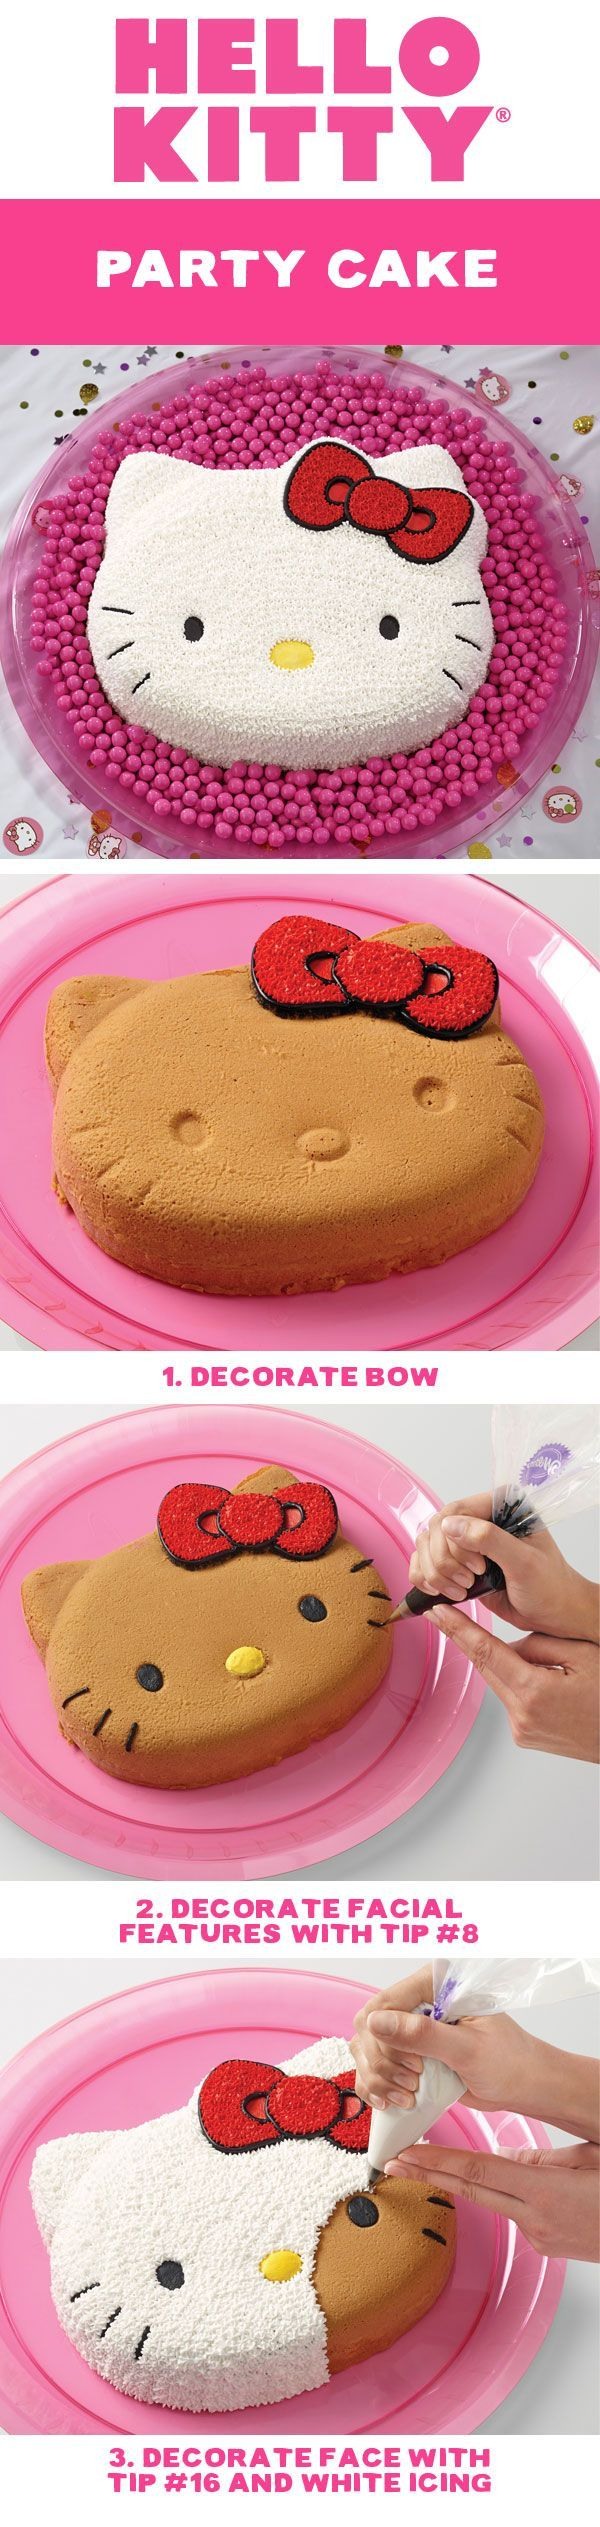 Amaze everyone at the party with your decorated Hello Kitty cake